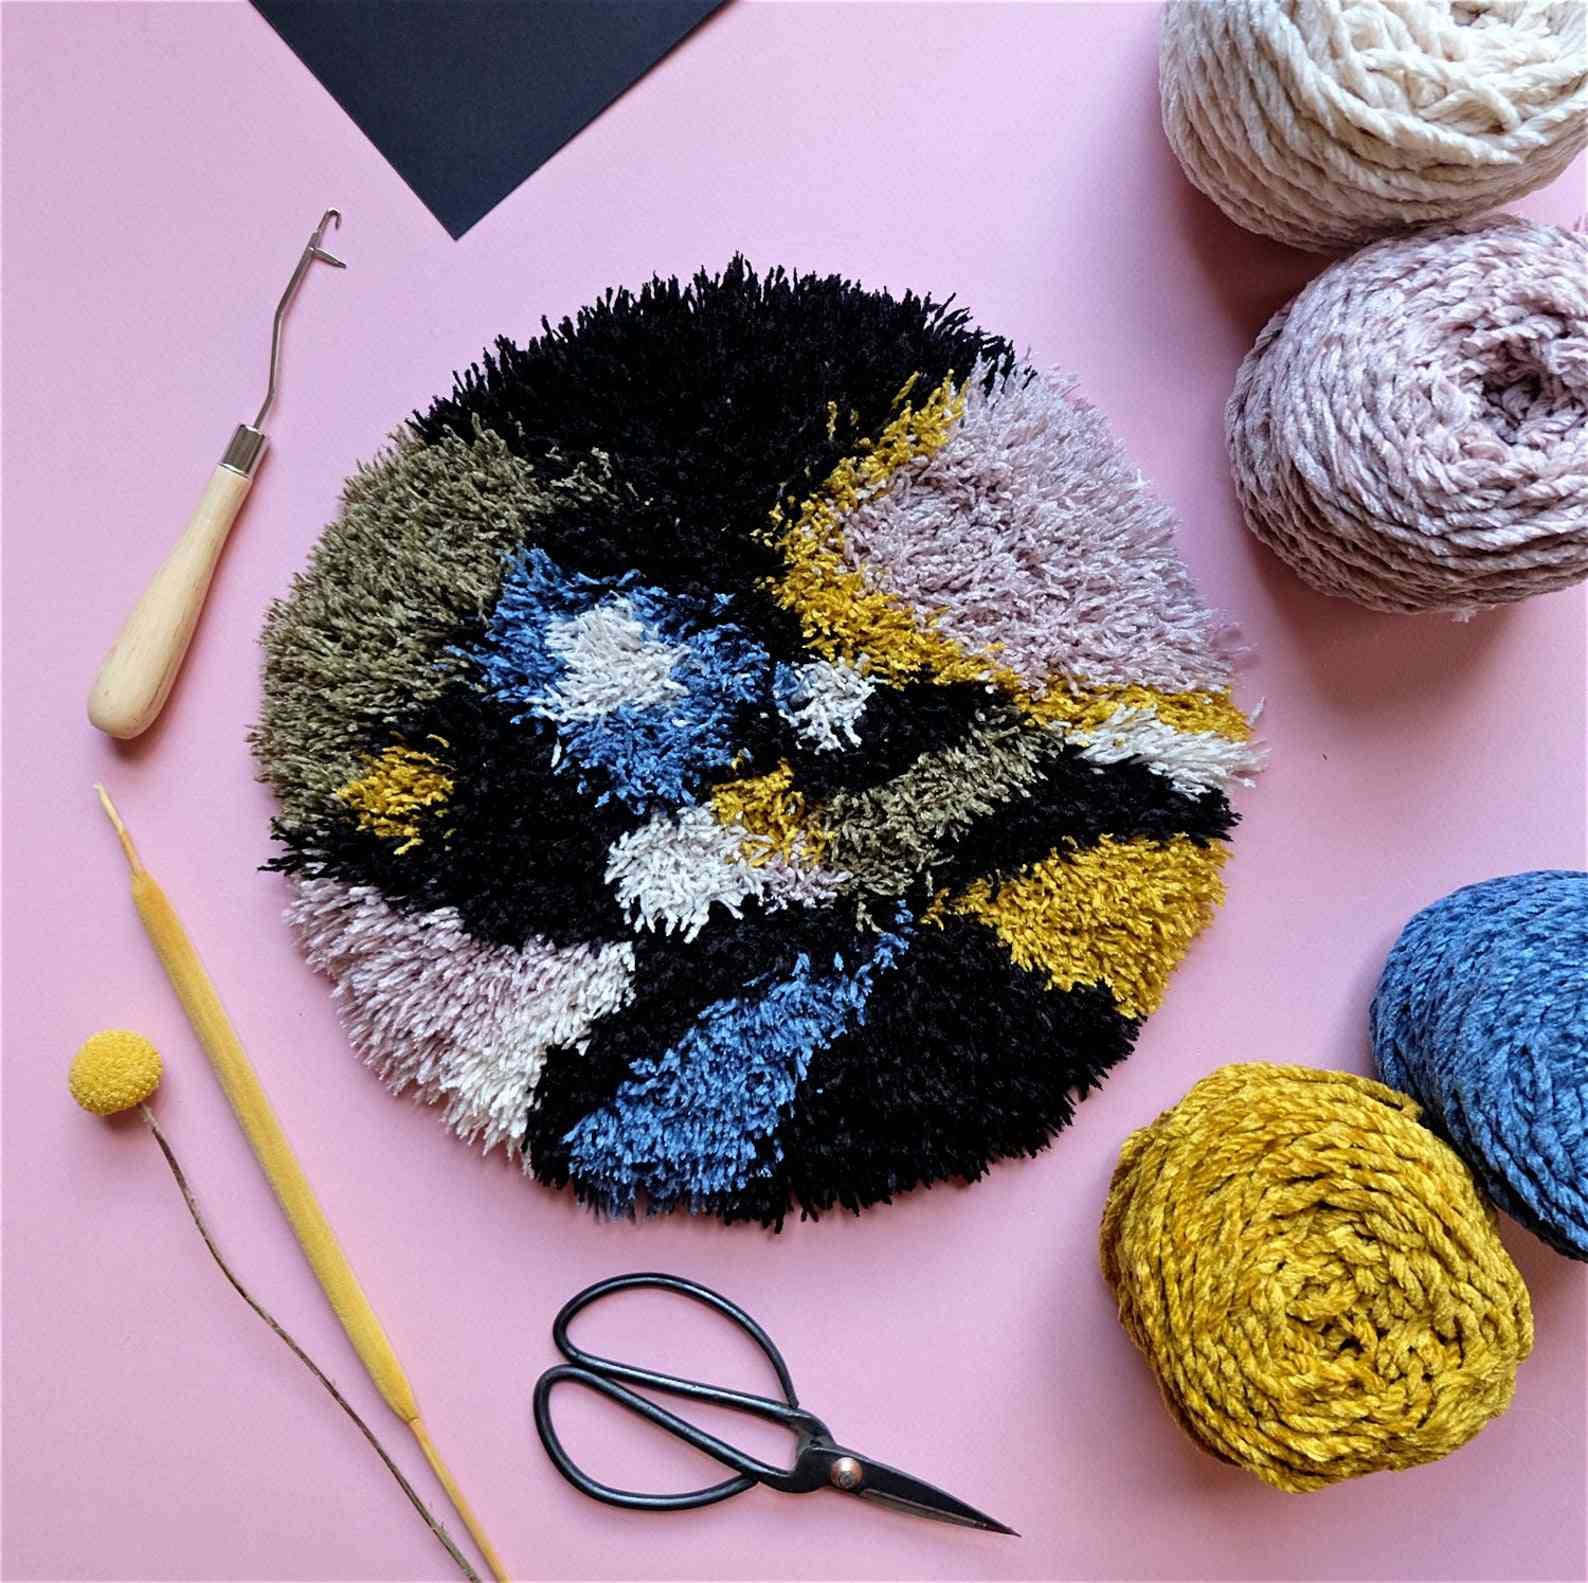 10 Latch Hook Rug Patterns Kits And Ideas